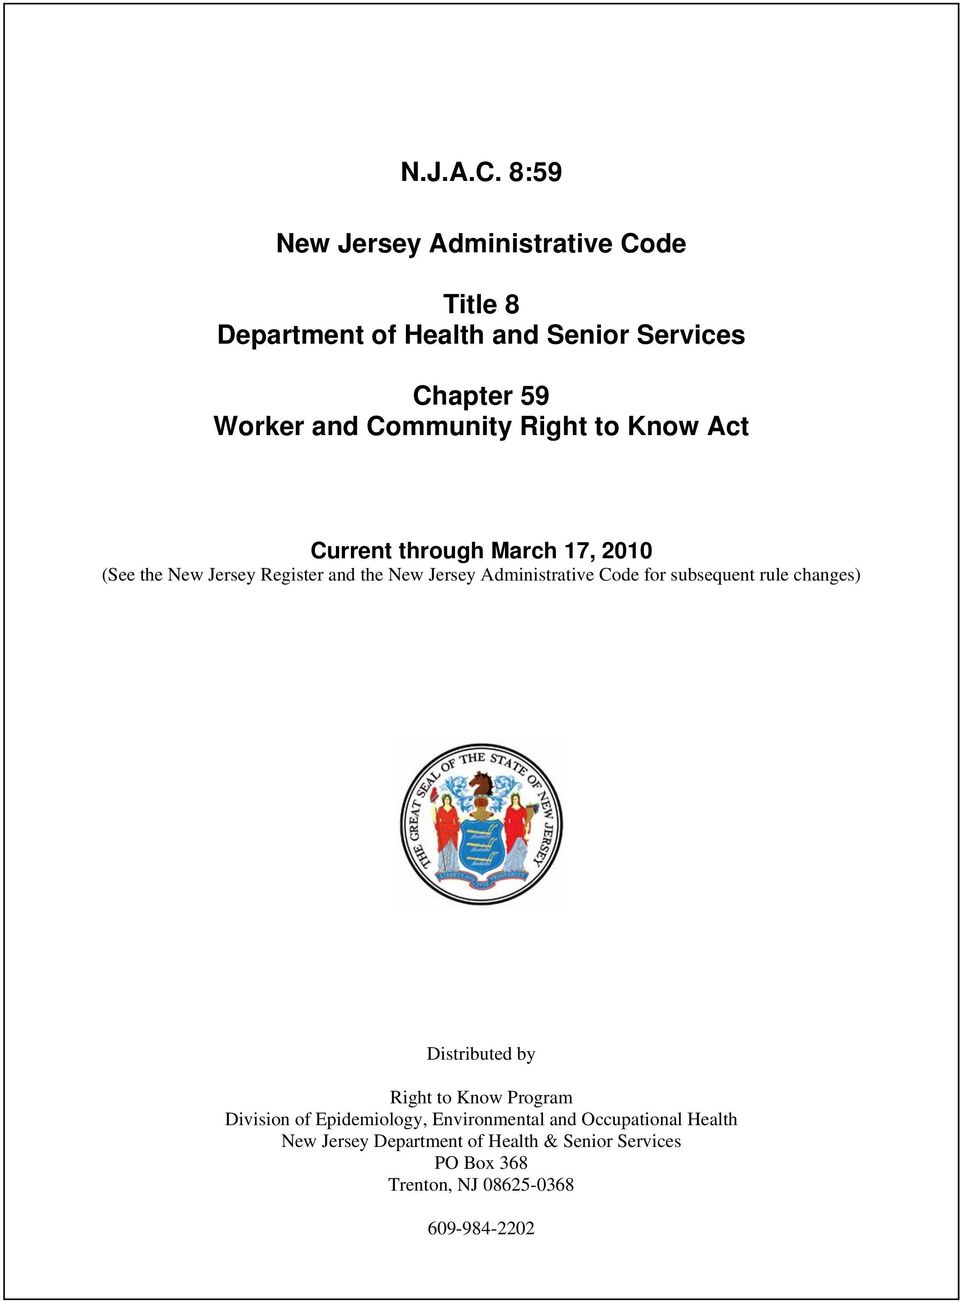 Right to Know Act Current through March 17, 2010 (See the New Jersey Register and the New Jersey Administrative Code